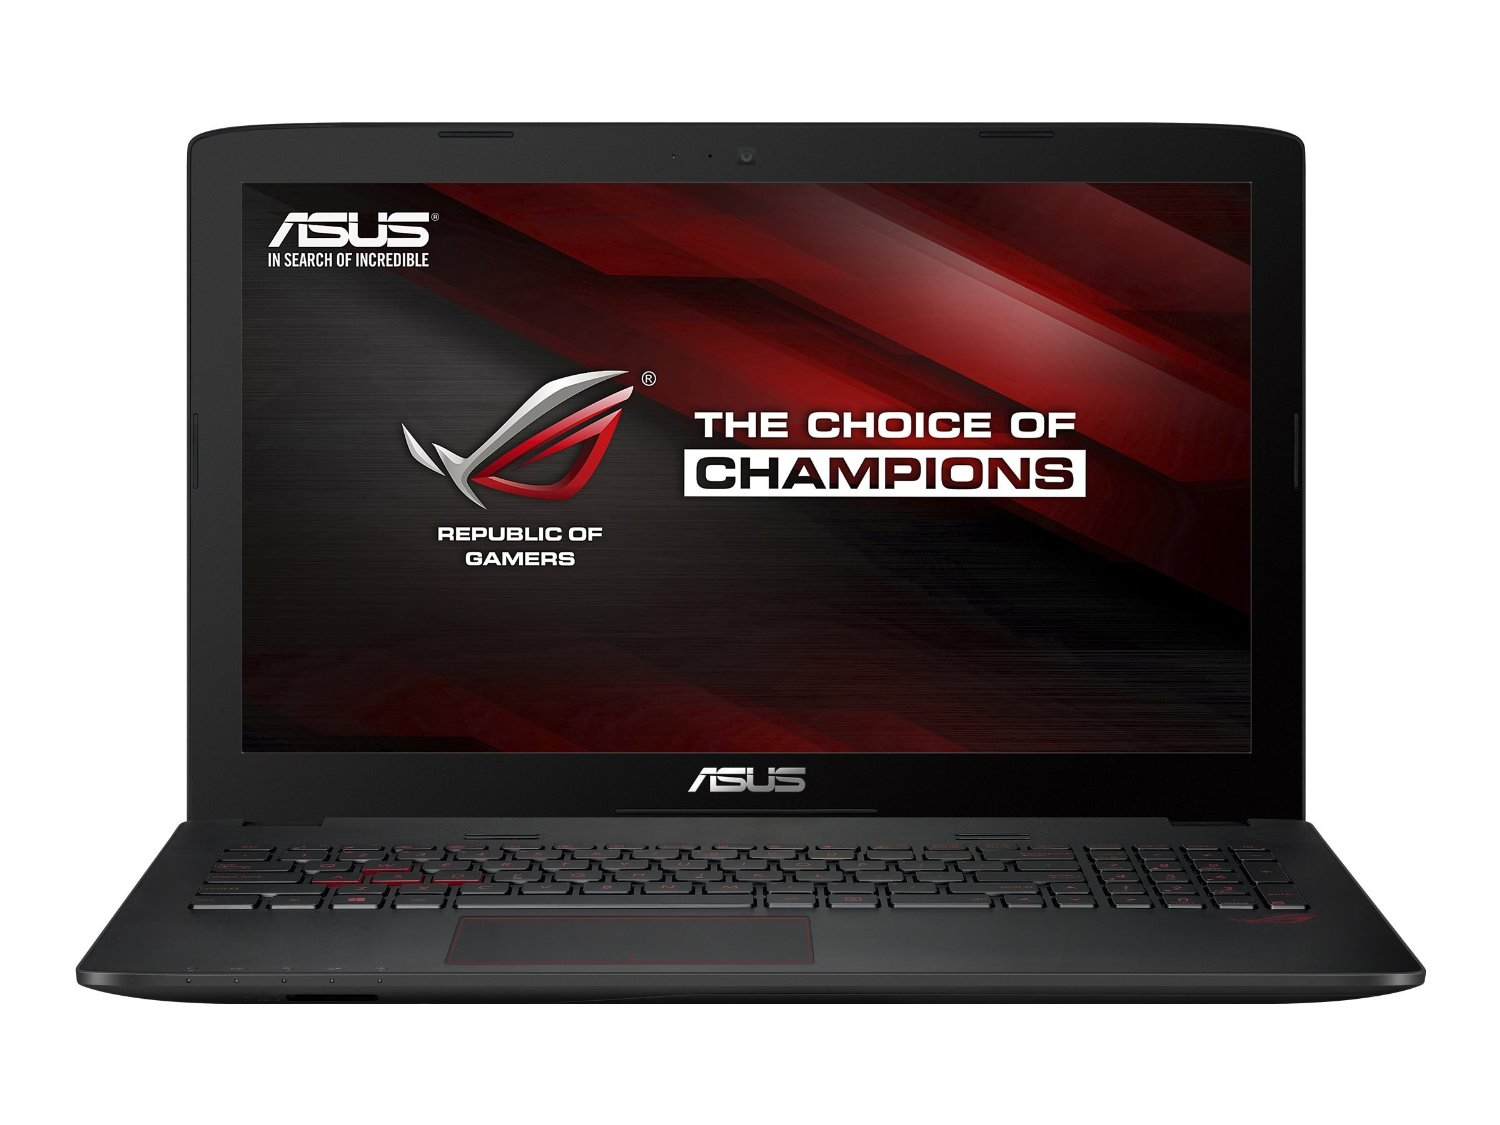 ASUS ROG GL552VW-DH74 gaming laptop